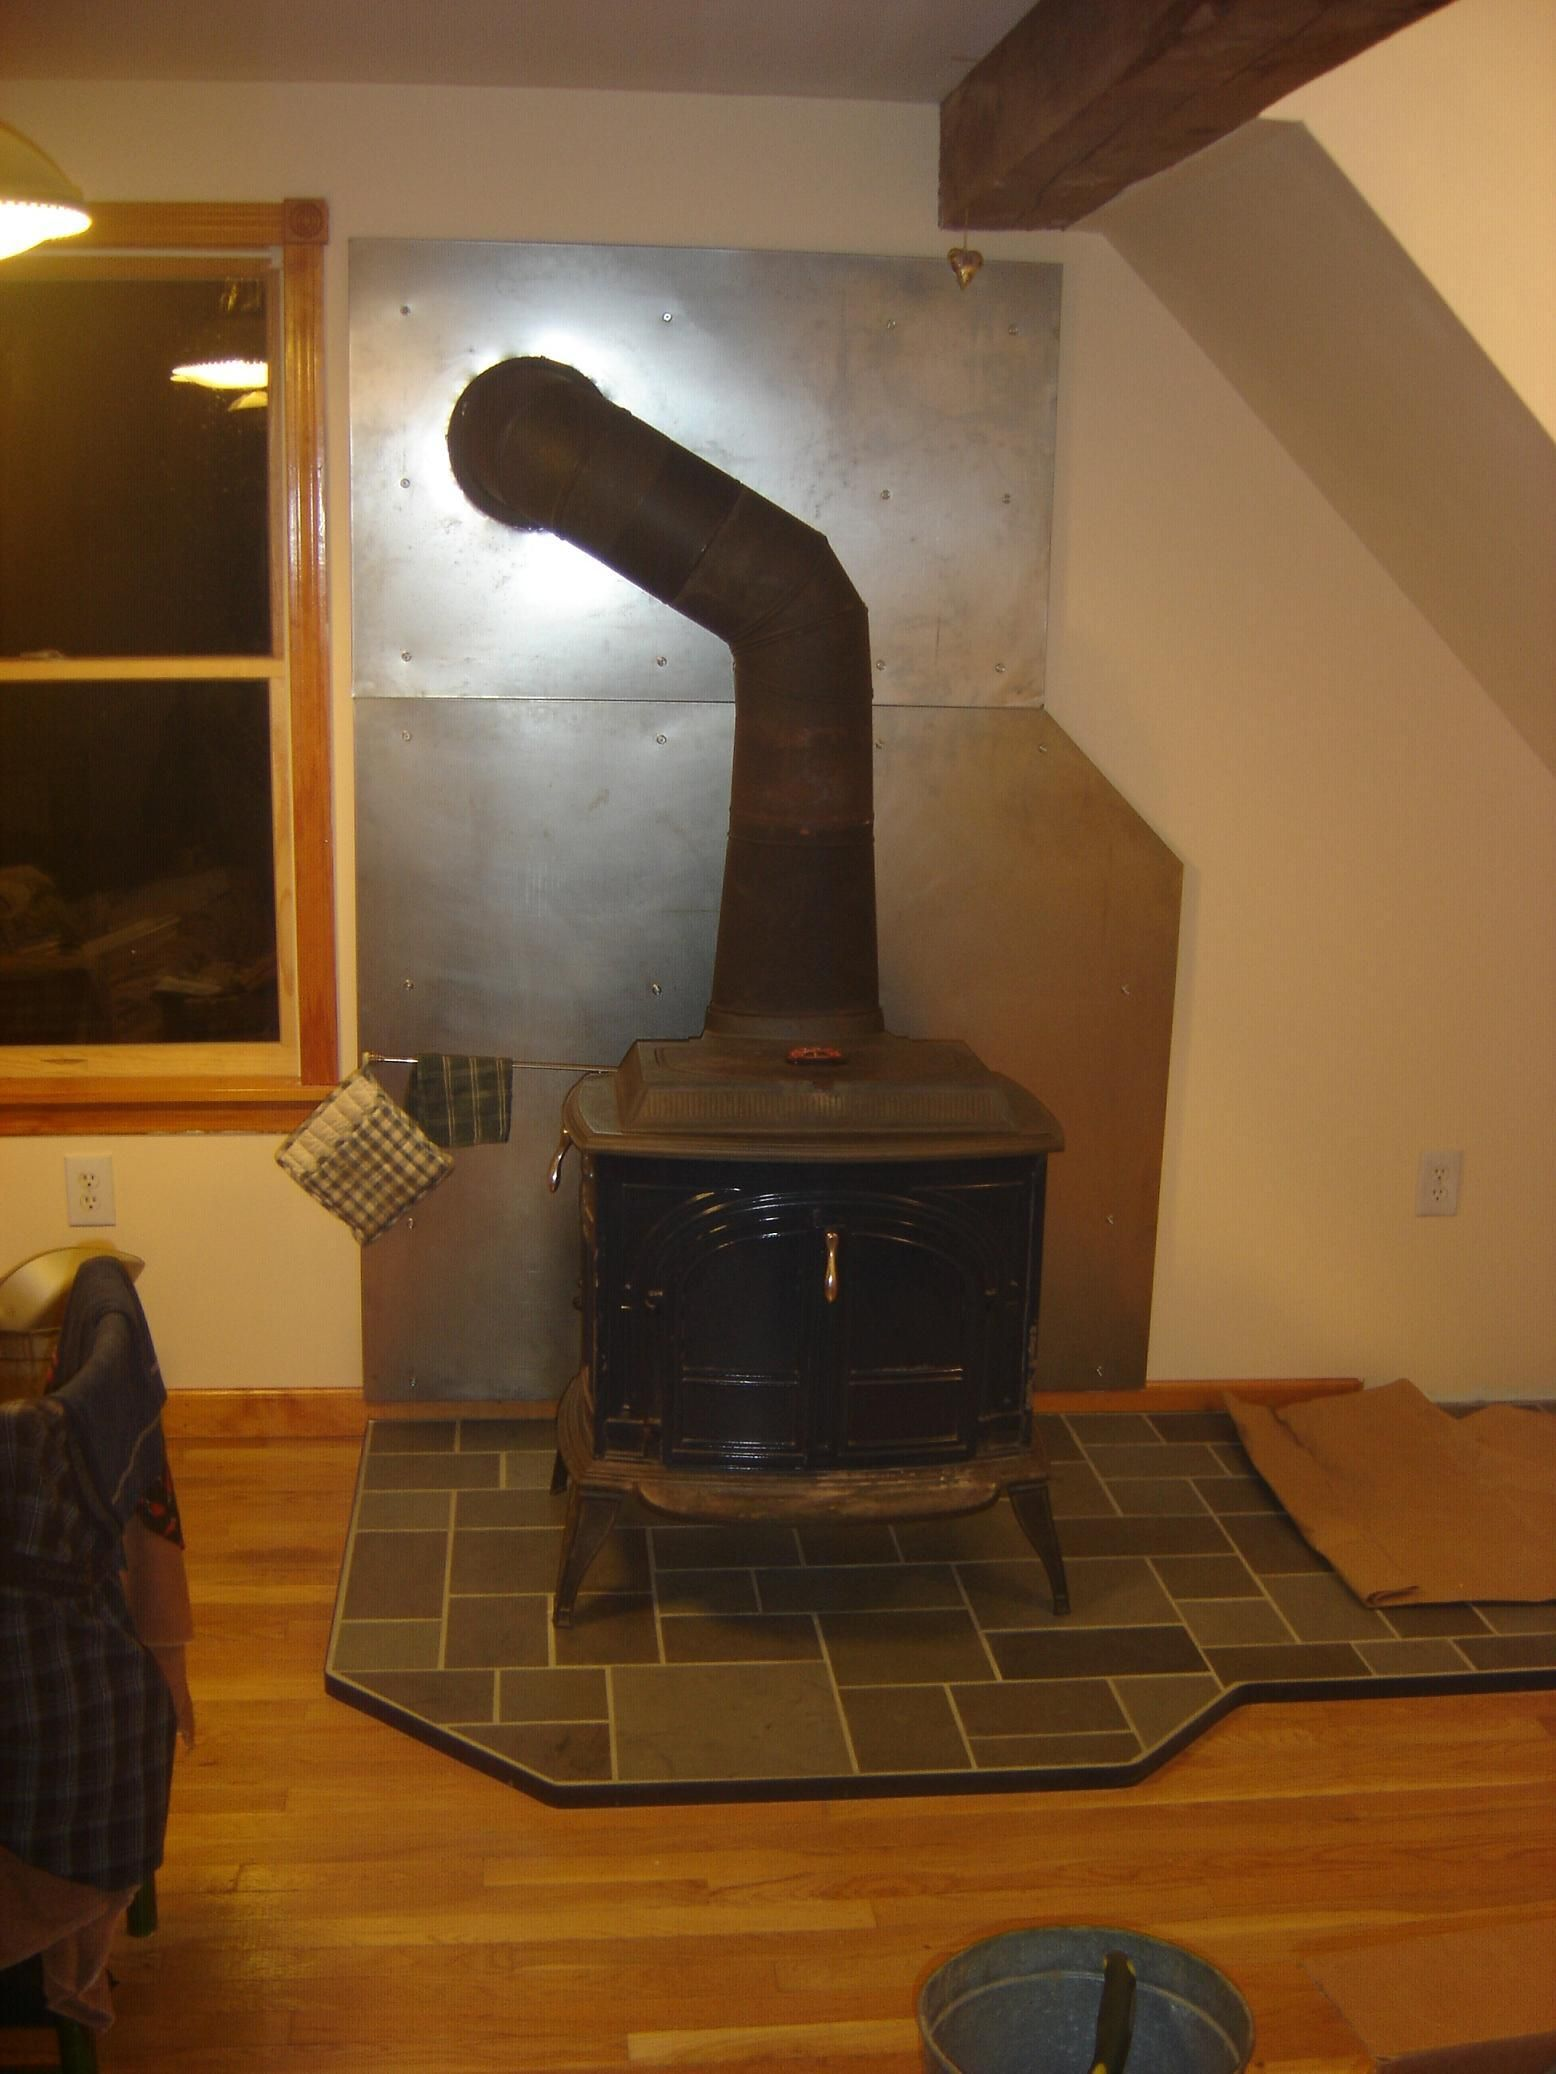 Stove - Stove Heat Shields - Google Search Stove Heat Shields